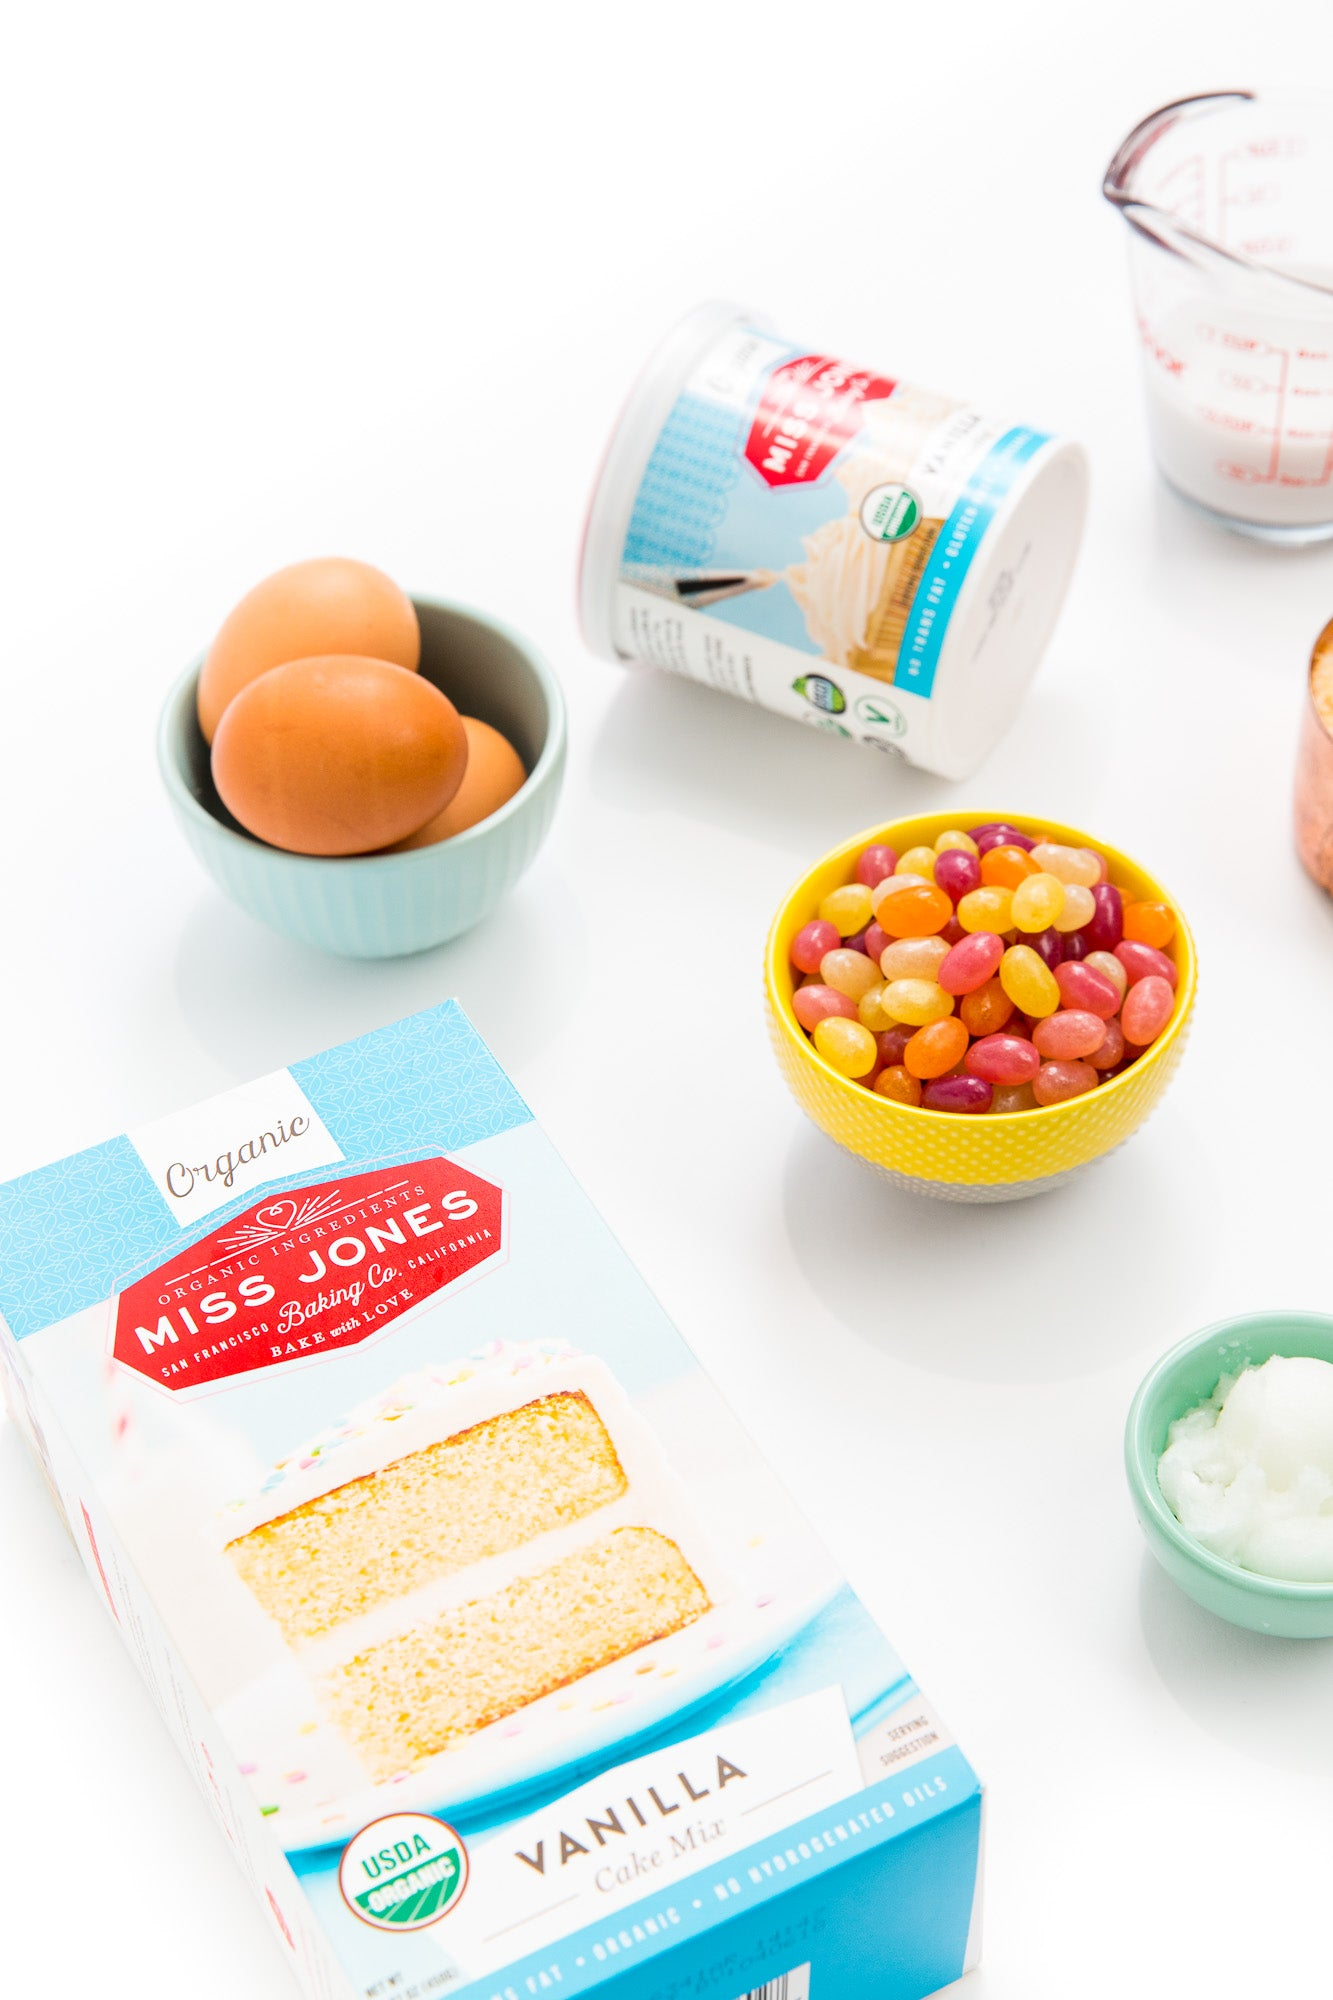 Image of a box of Miss Jones Vanilla Cake Mix, a bowl of three eggs, a bowl of jellybeans, a jar of Miss Jones Vanilla Frosting, and a bowl of coconut oil for Miss Jones Baking Co Toasted Coconut Easter Egg Nest Cupcakes recipe